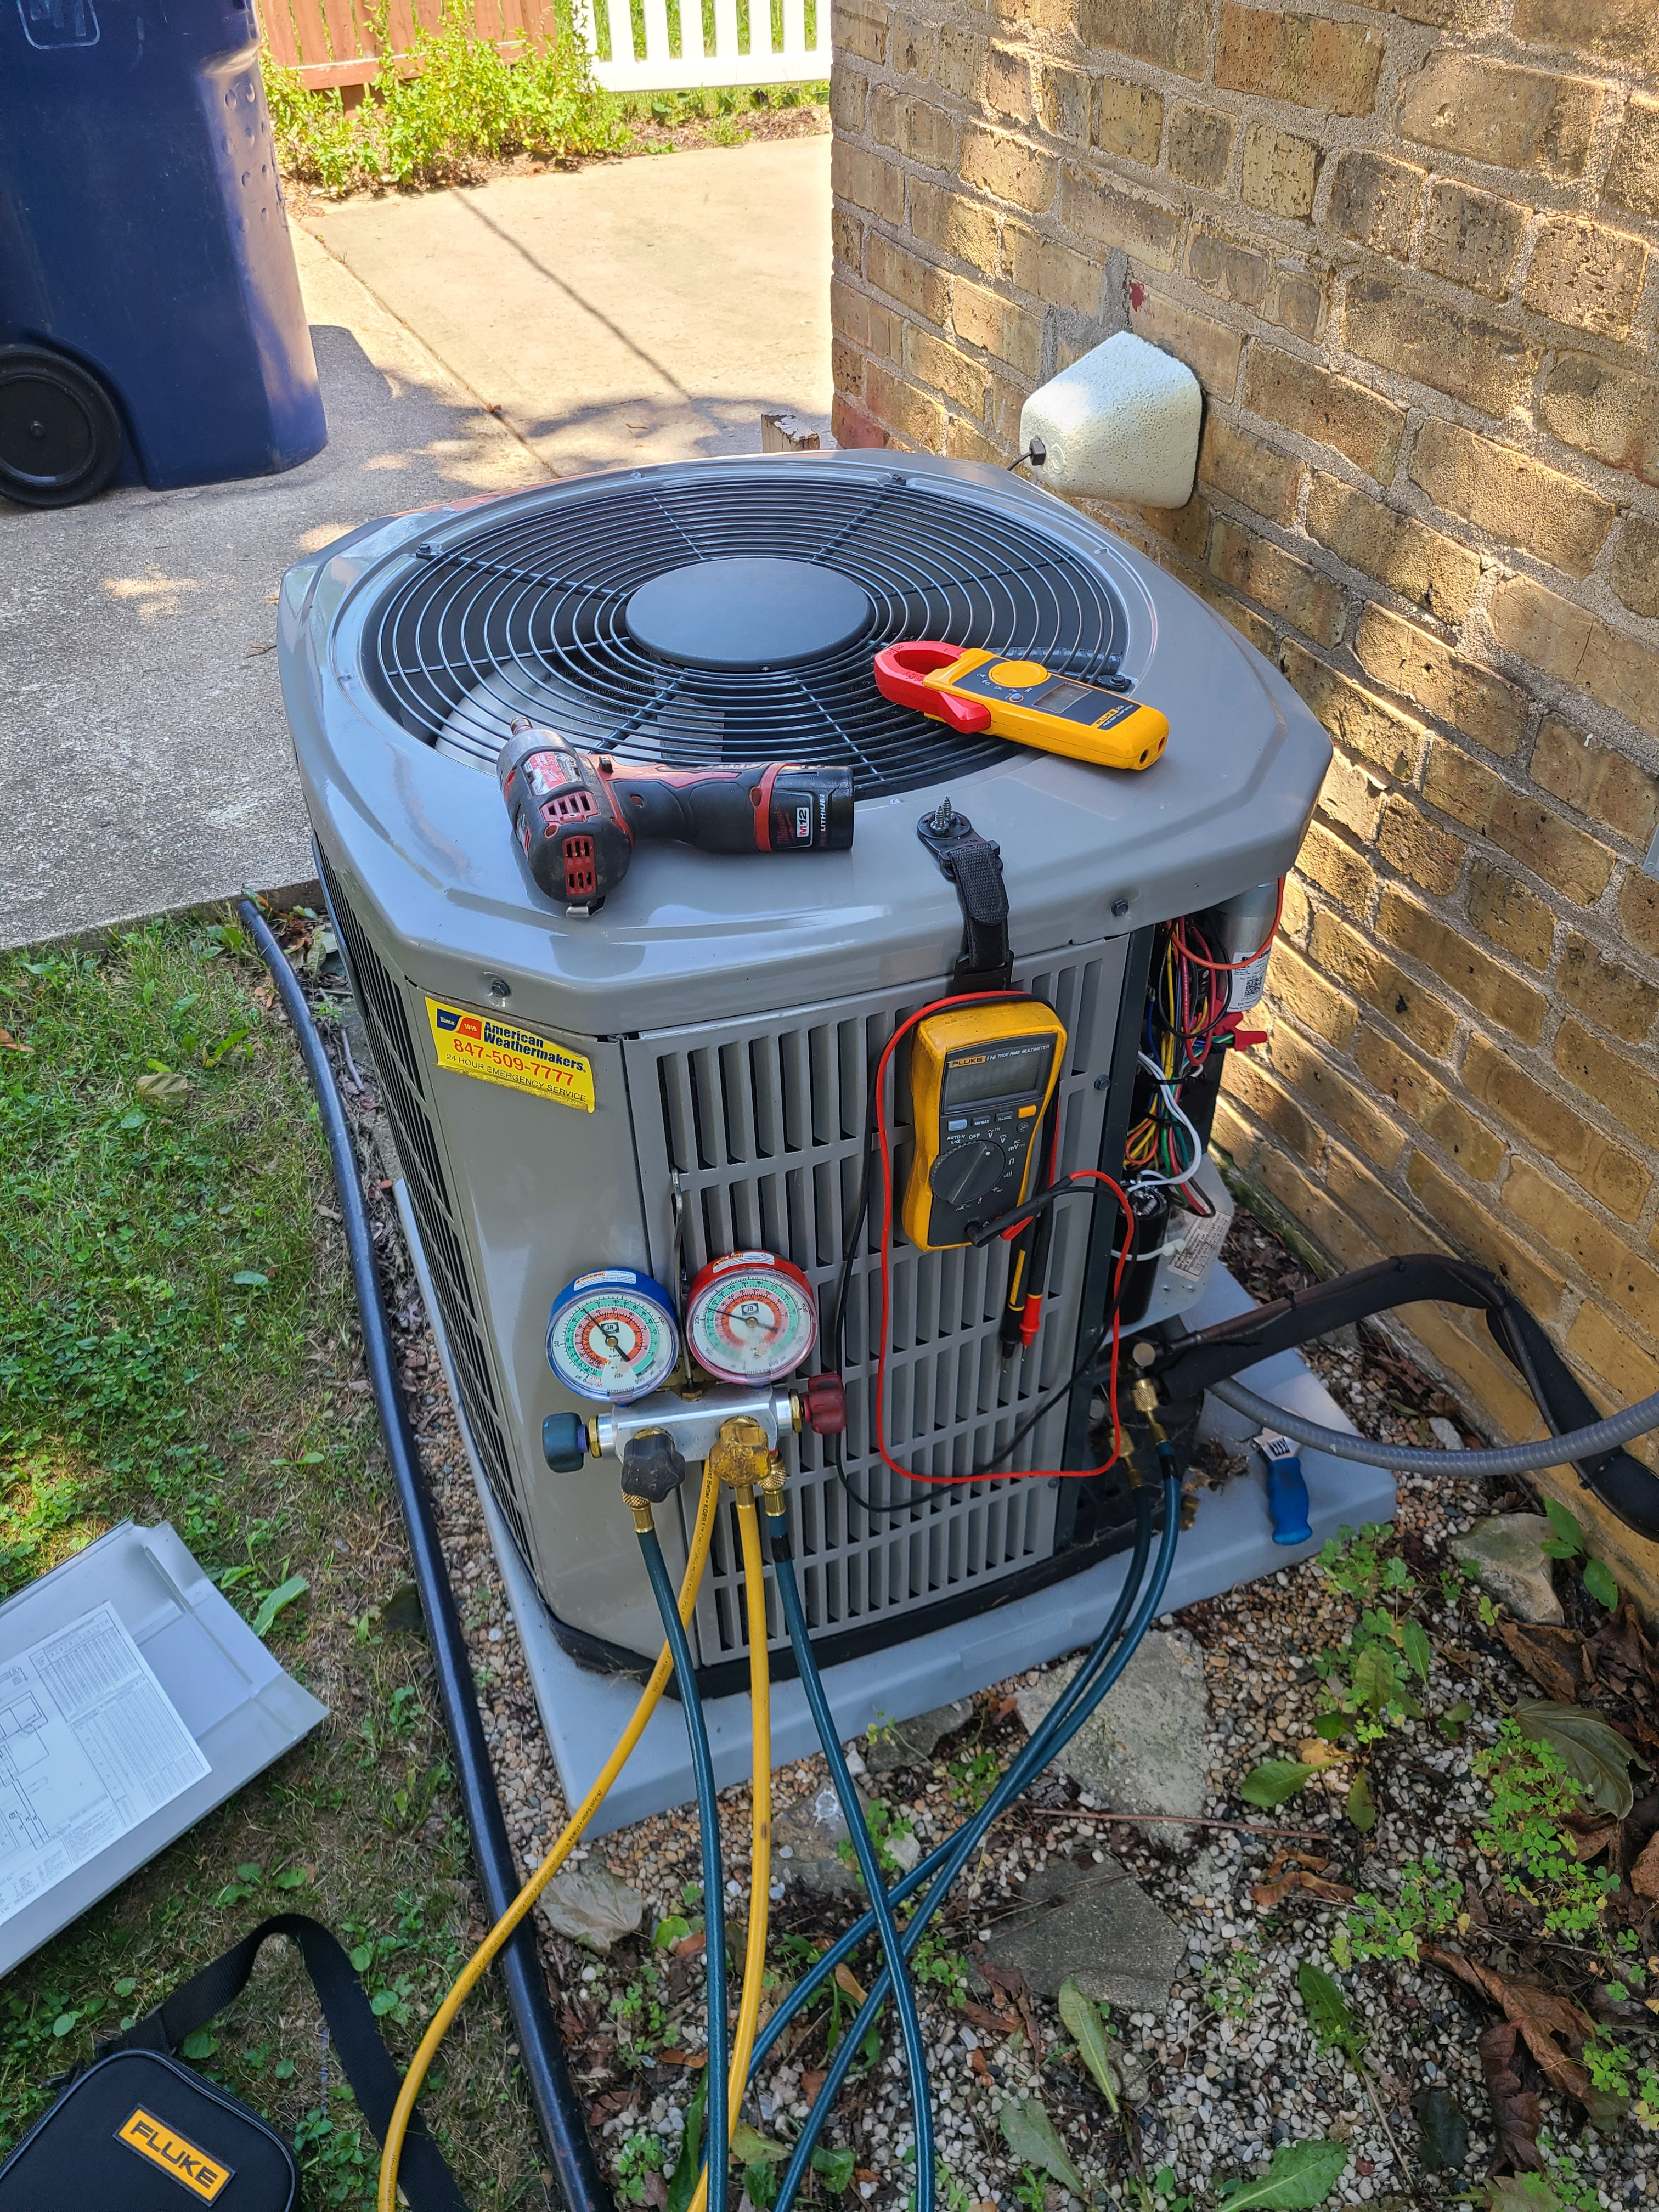 American Standard sumer maintenance. System cleaned and checked and ready for summer.